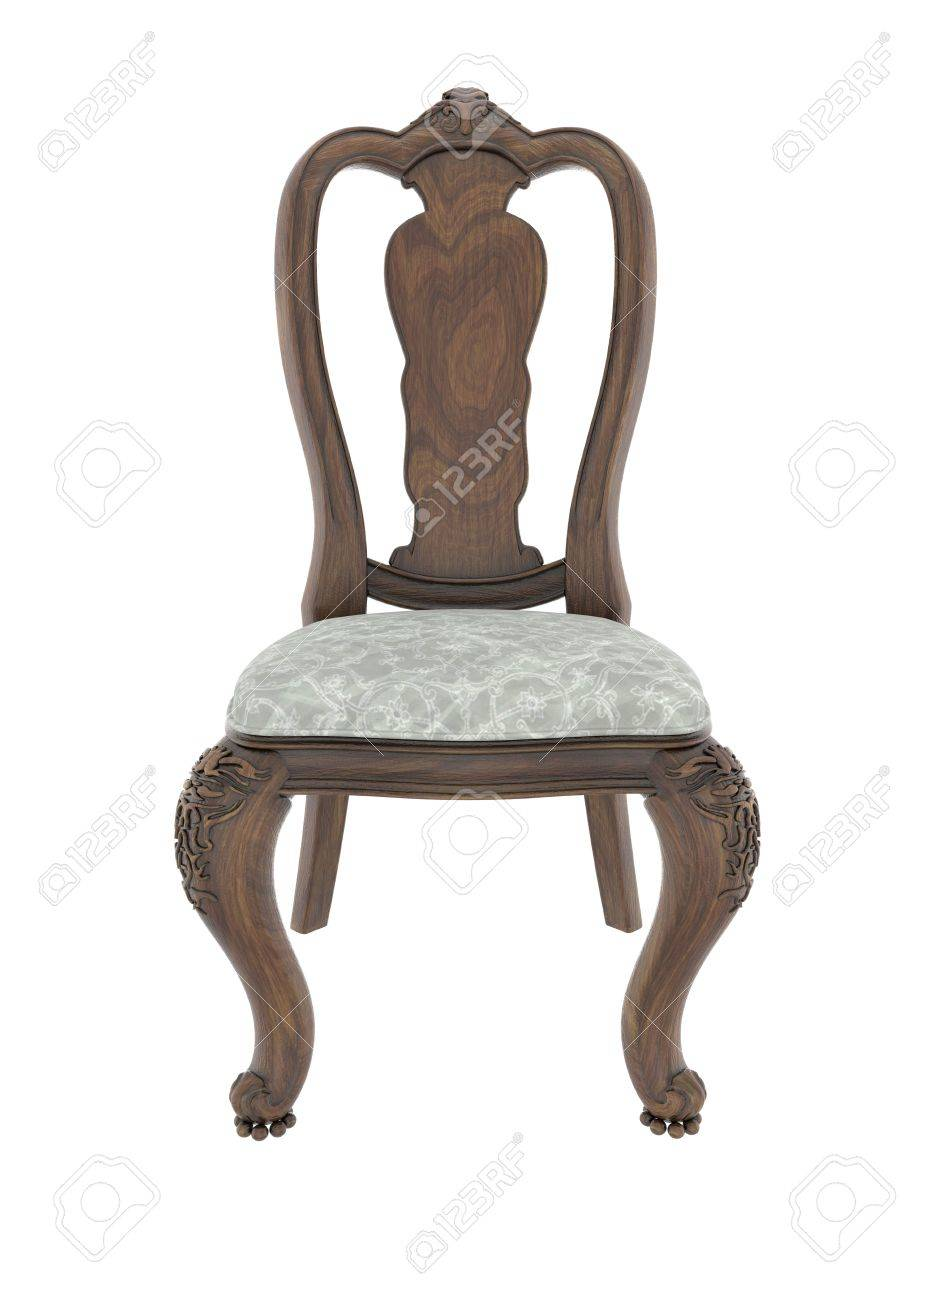 Hand carved antique arm chair with clipping path on white background Stock  Photo - 50923171 - Hand Carved Antique Arm Chair With Clipping Path On White Background